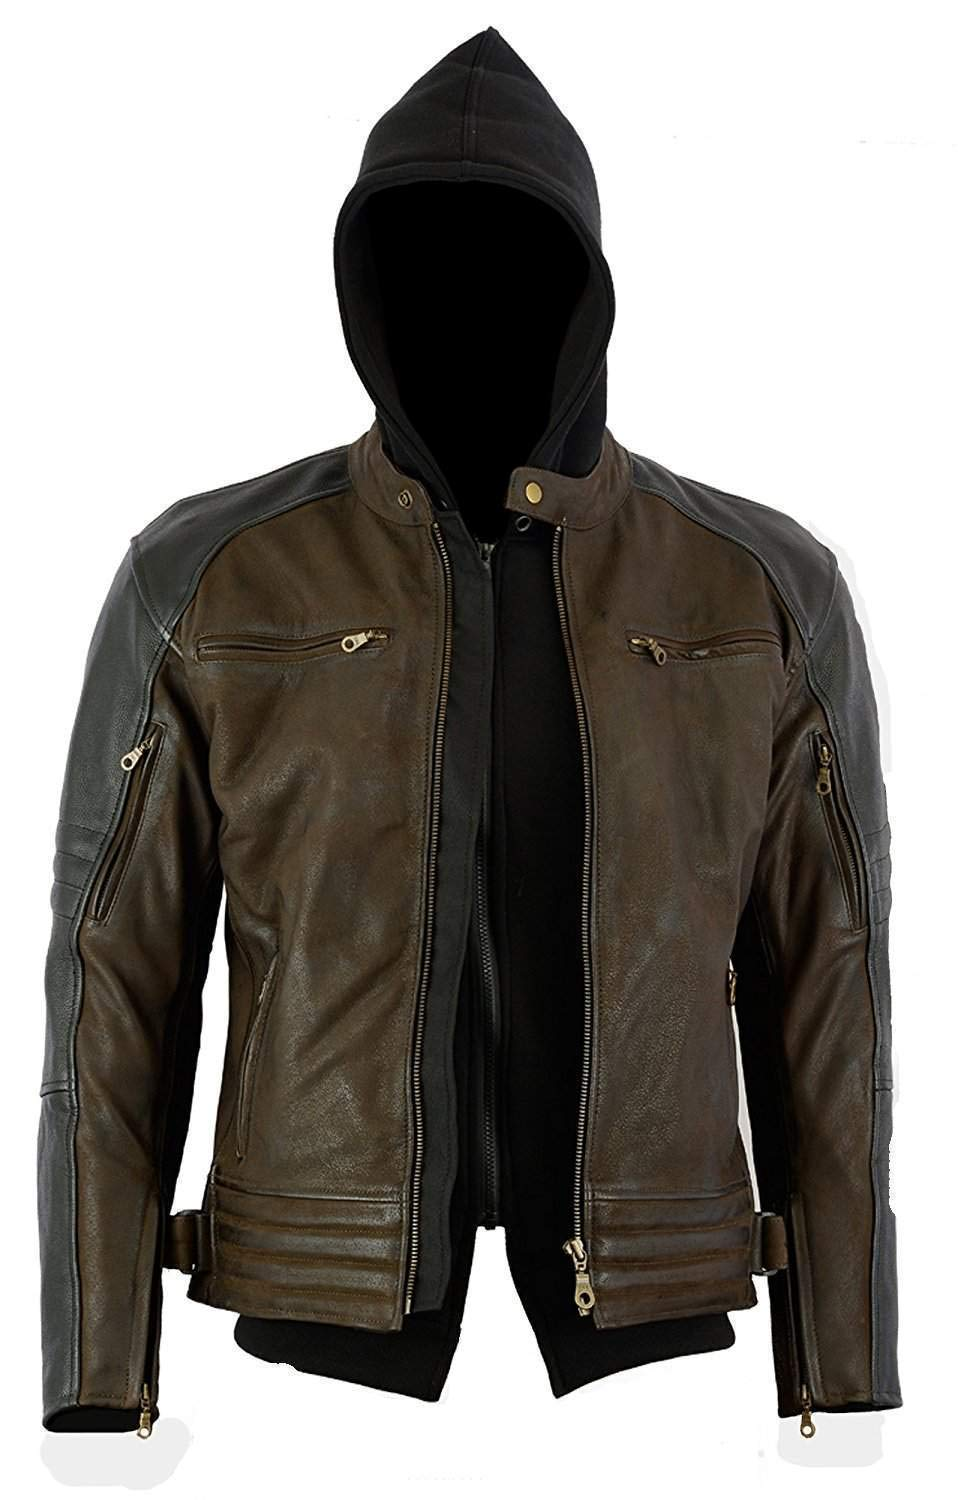 CE 1621-1 Removable 5 Piece Armour Size XL Bikers Gear Australia New Craig Waxed Nubuck Premium Leather with Removable Hoodie Motorcycle Jacket Charcoal Black